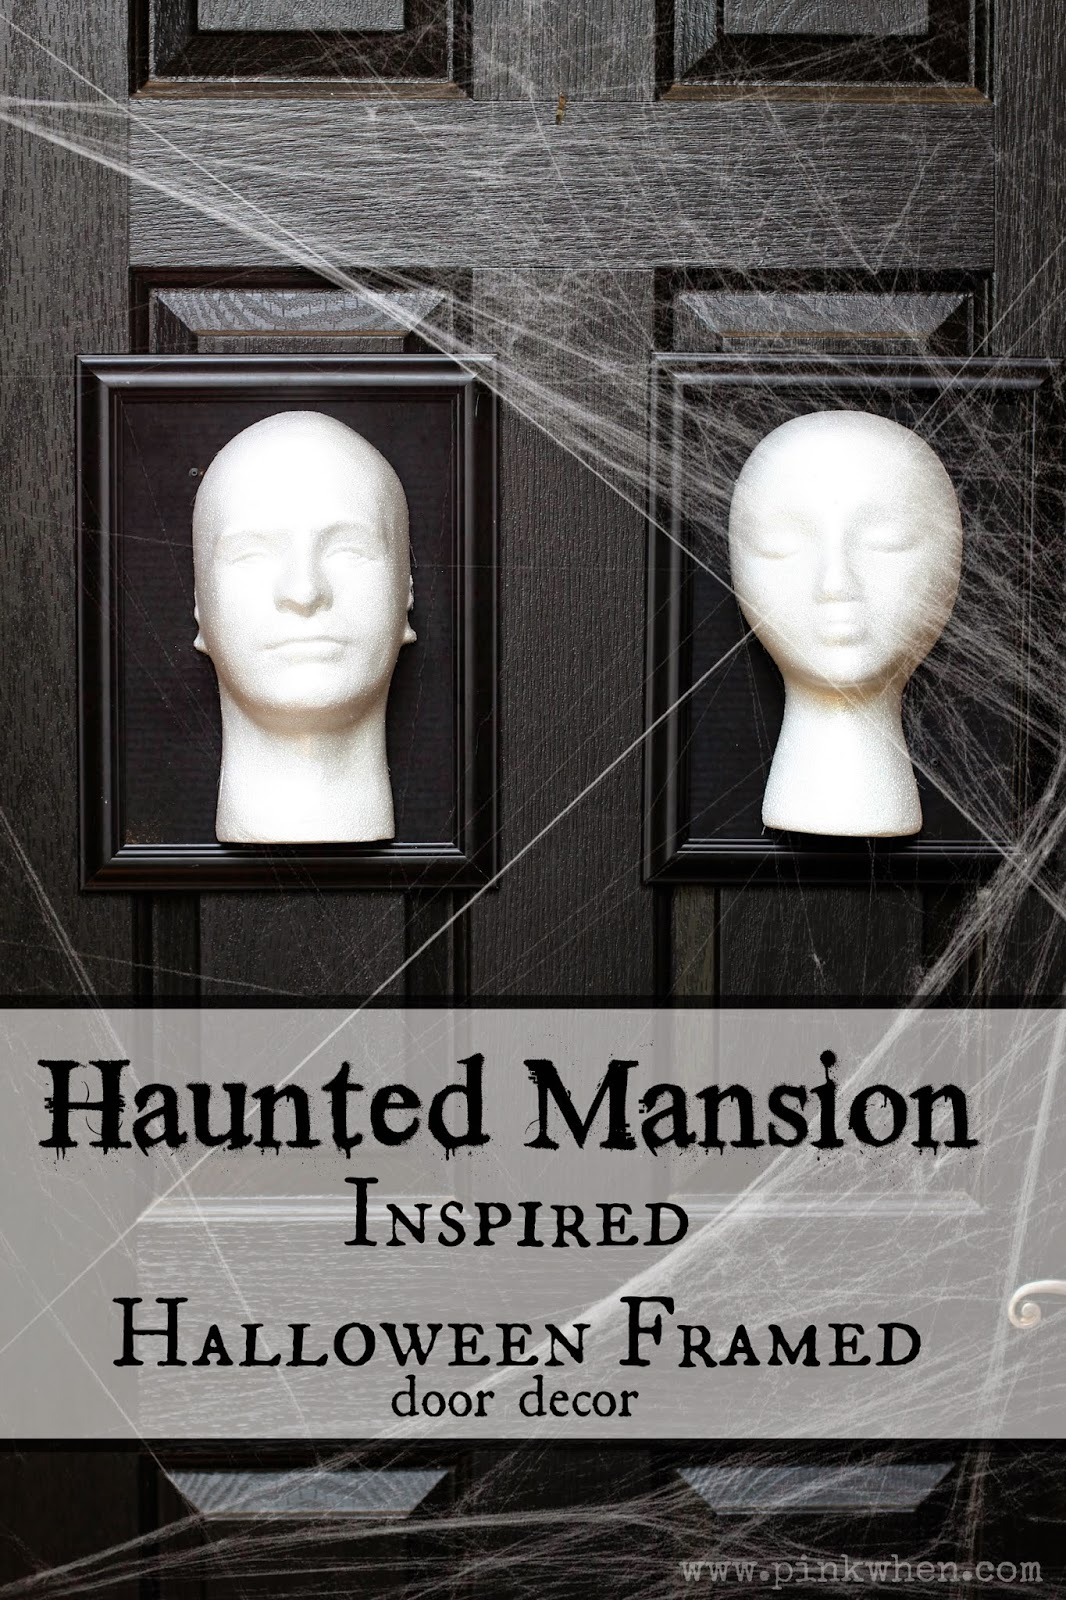 http://www.pinkwhen.com/haunted-mansion-inspired-halloween-frames/